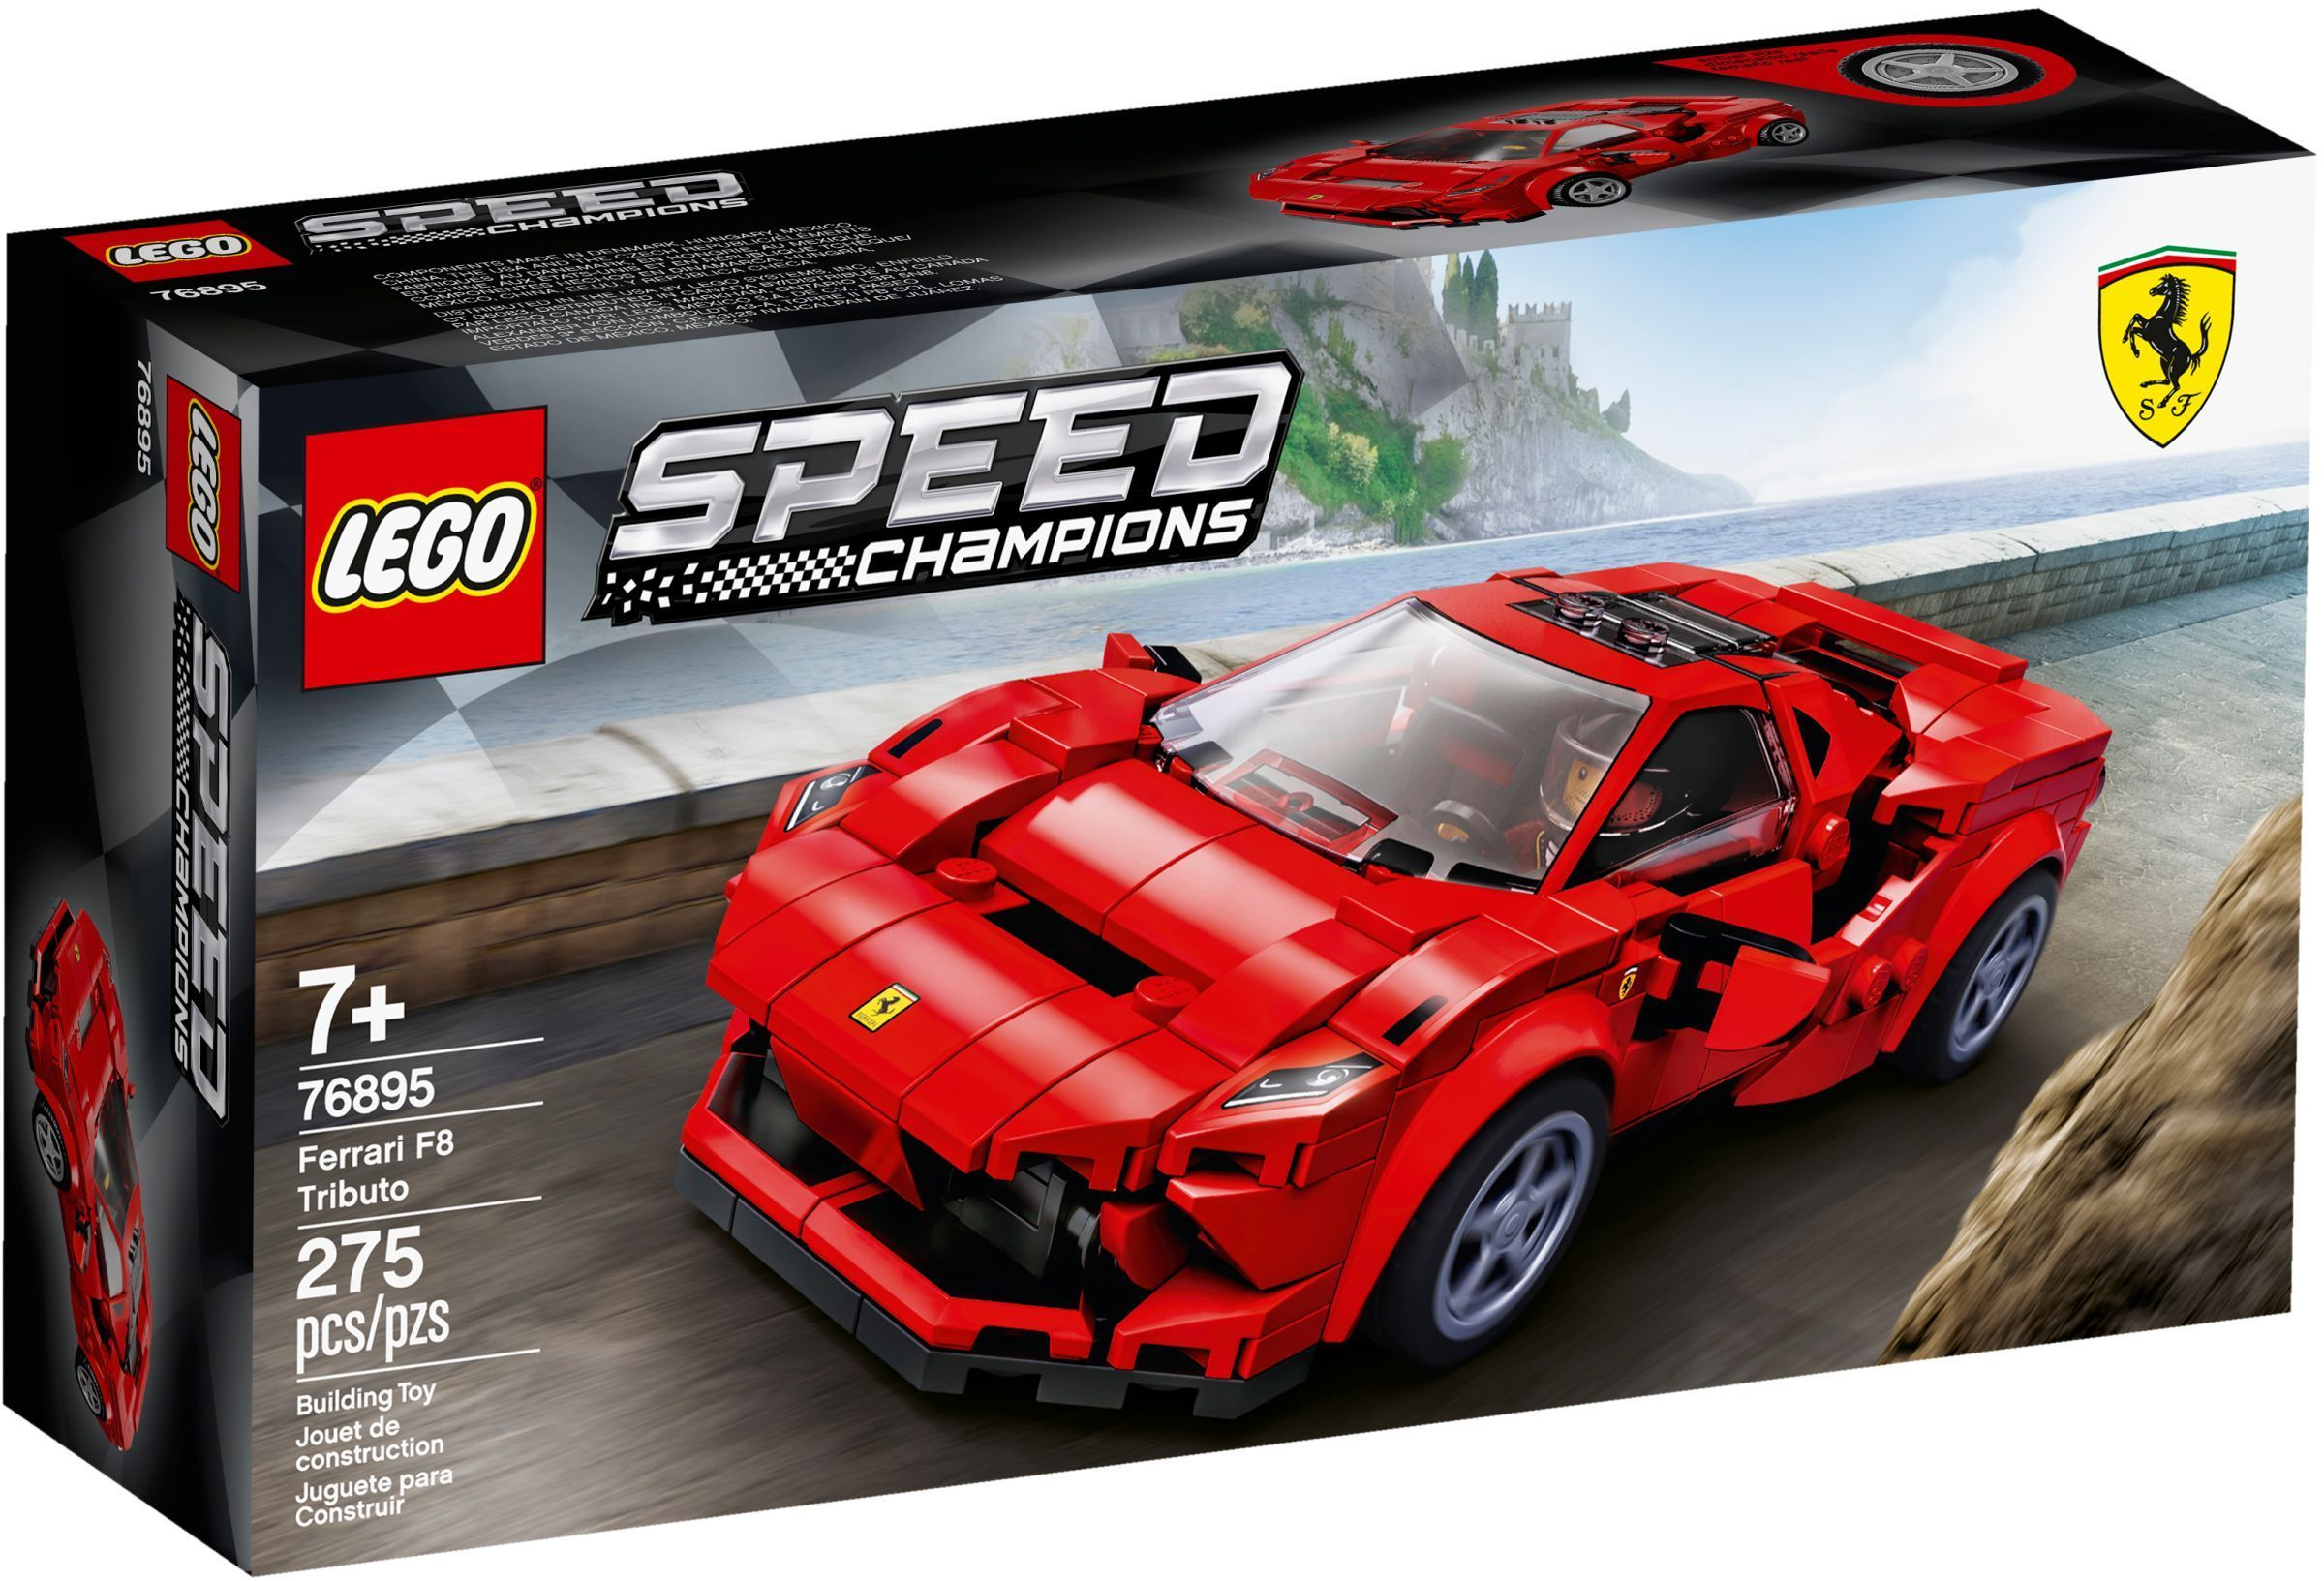 Lego Speed 76895 Ferrari F8 Tributo Lego Speed Champions Toy Model Cars Toy Cars For Kids